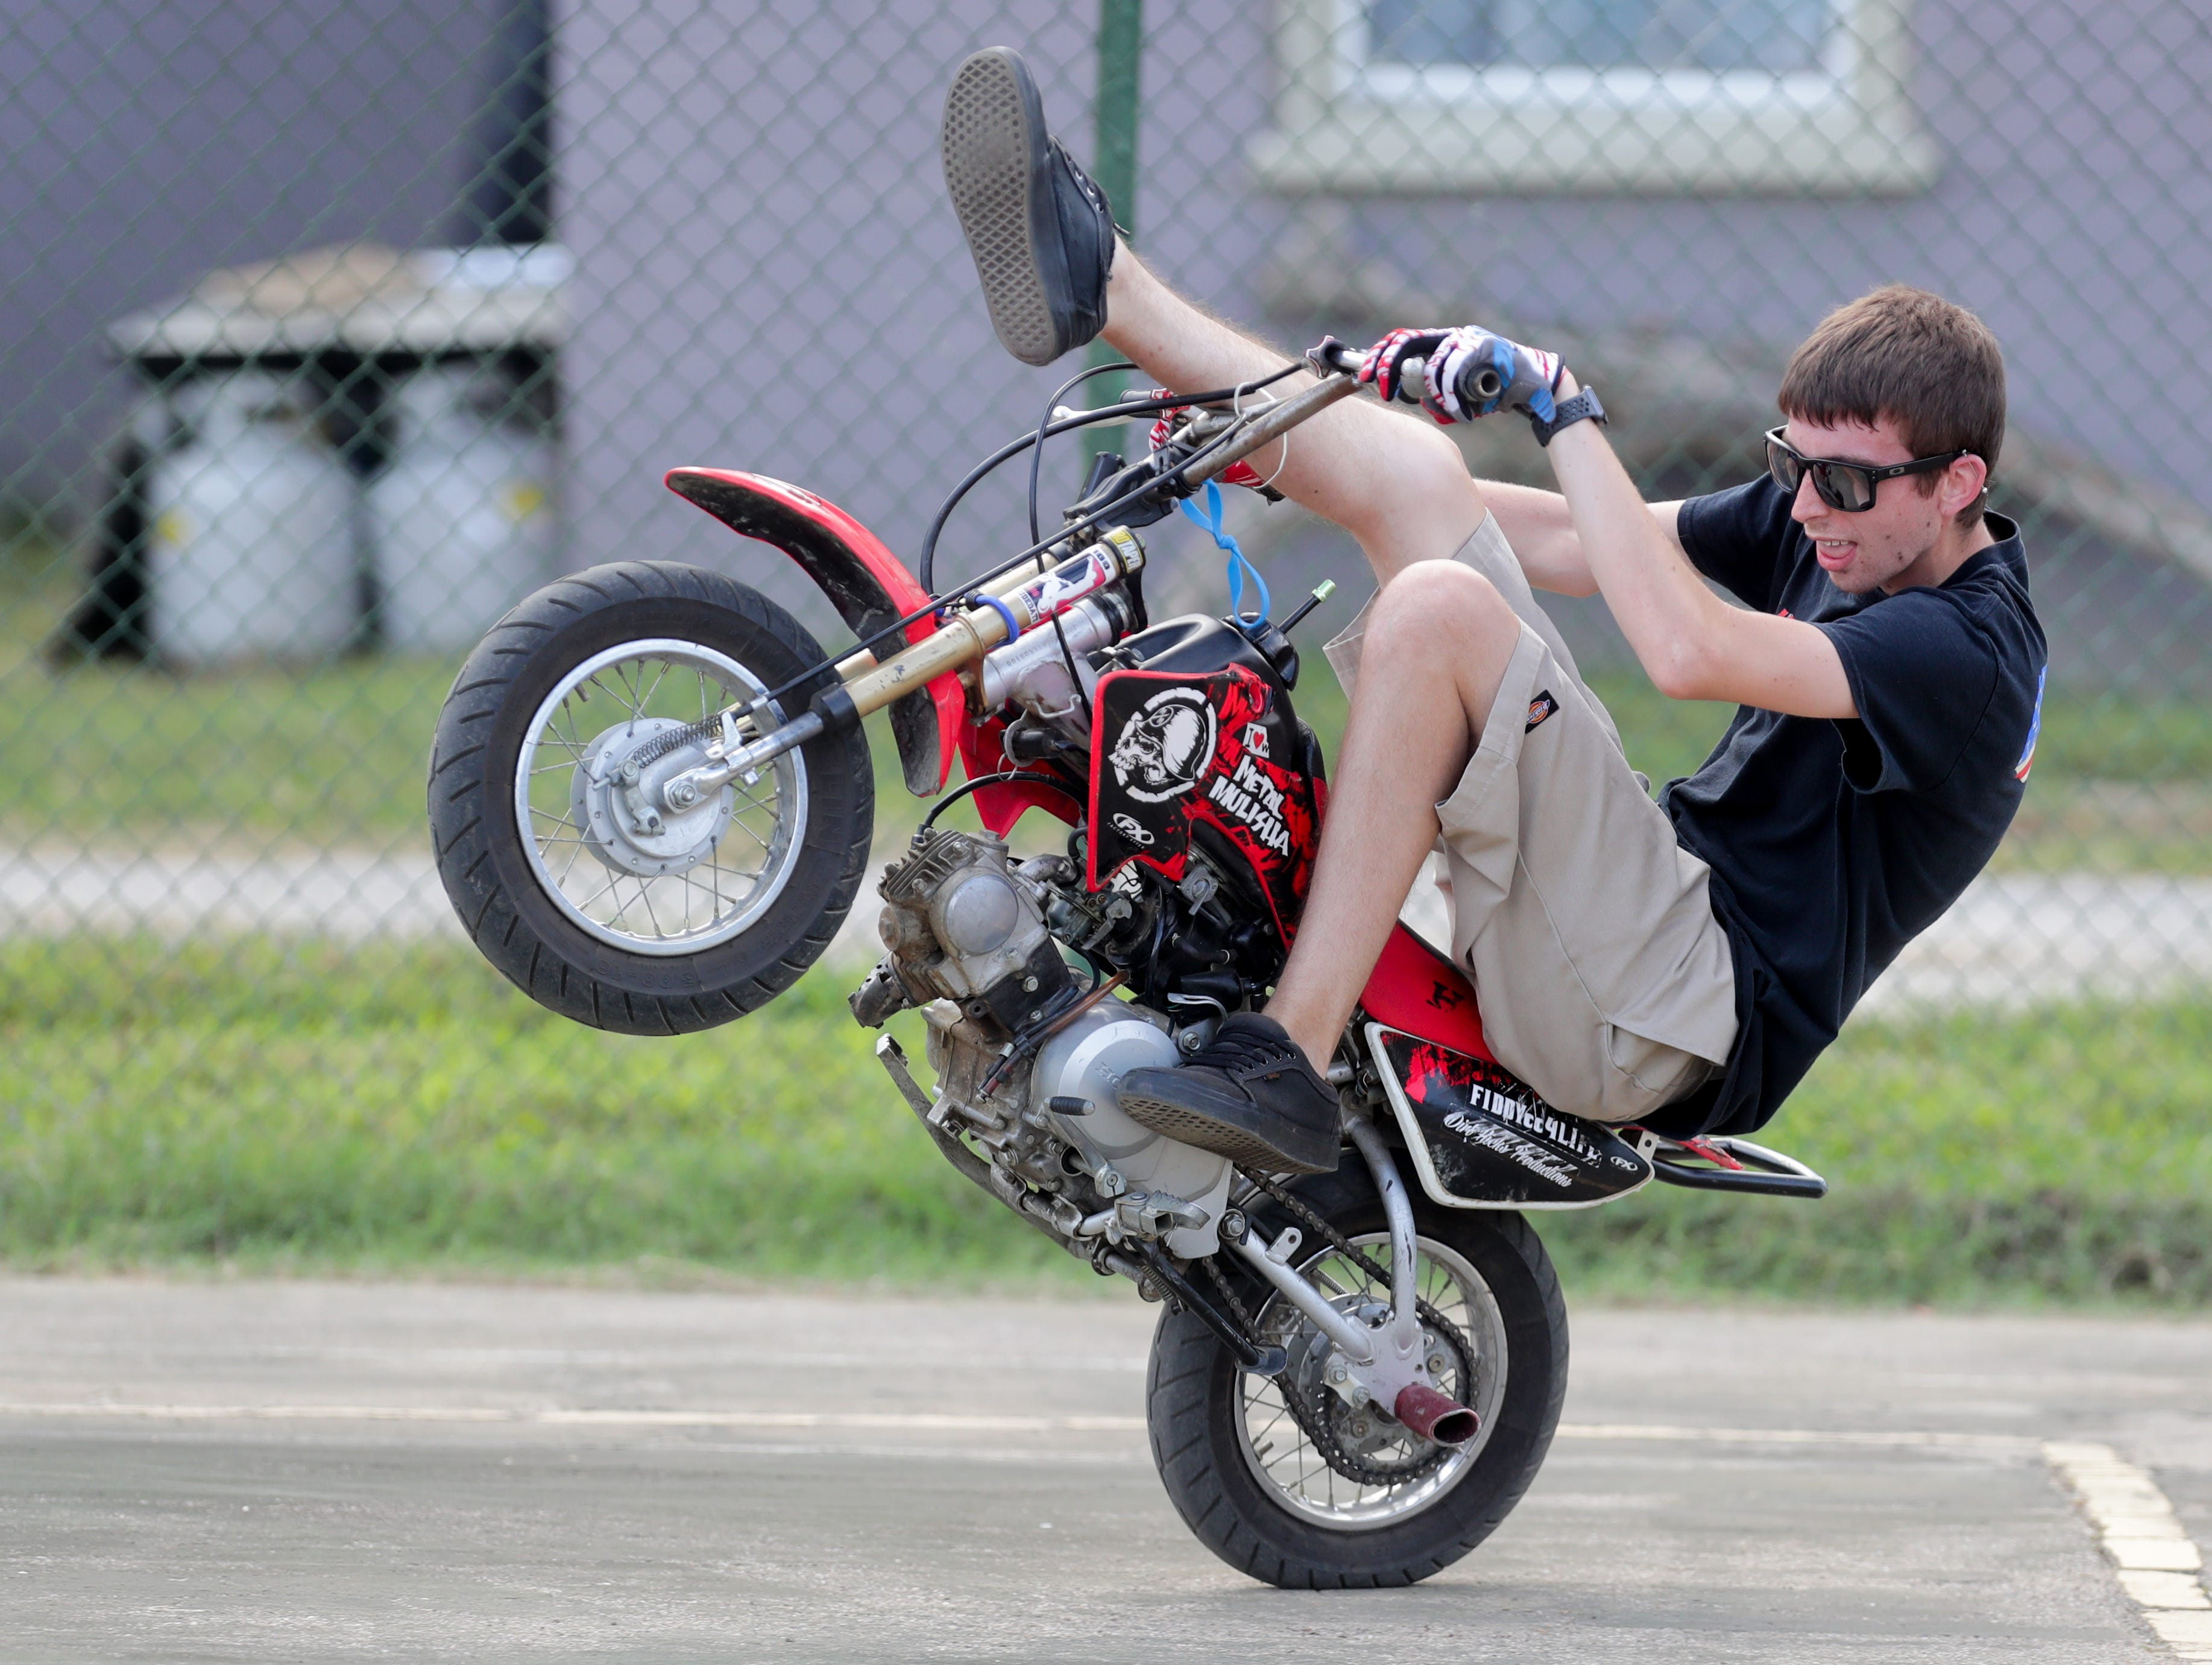 Jordan Thomas performs tricks in the stunt area of the Kentucky Kick Down Festival.